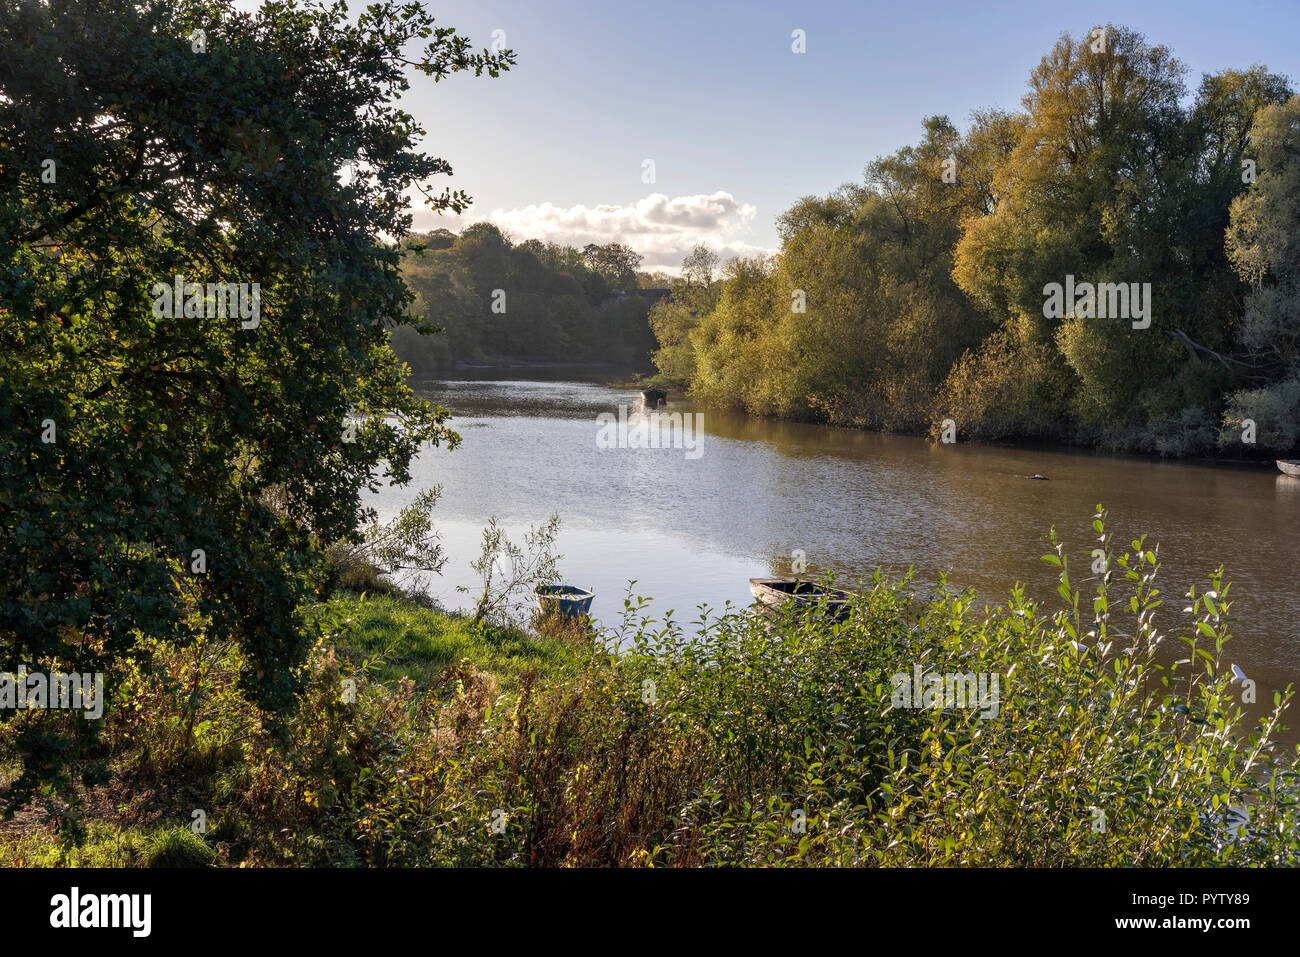 Chester North West England. River Dee tidal reach. - Stock Image